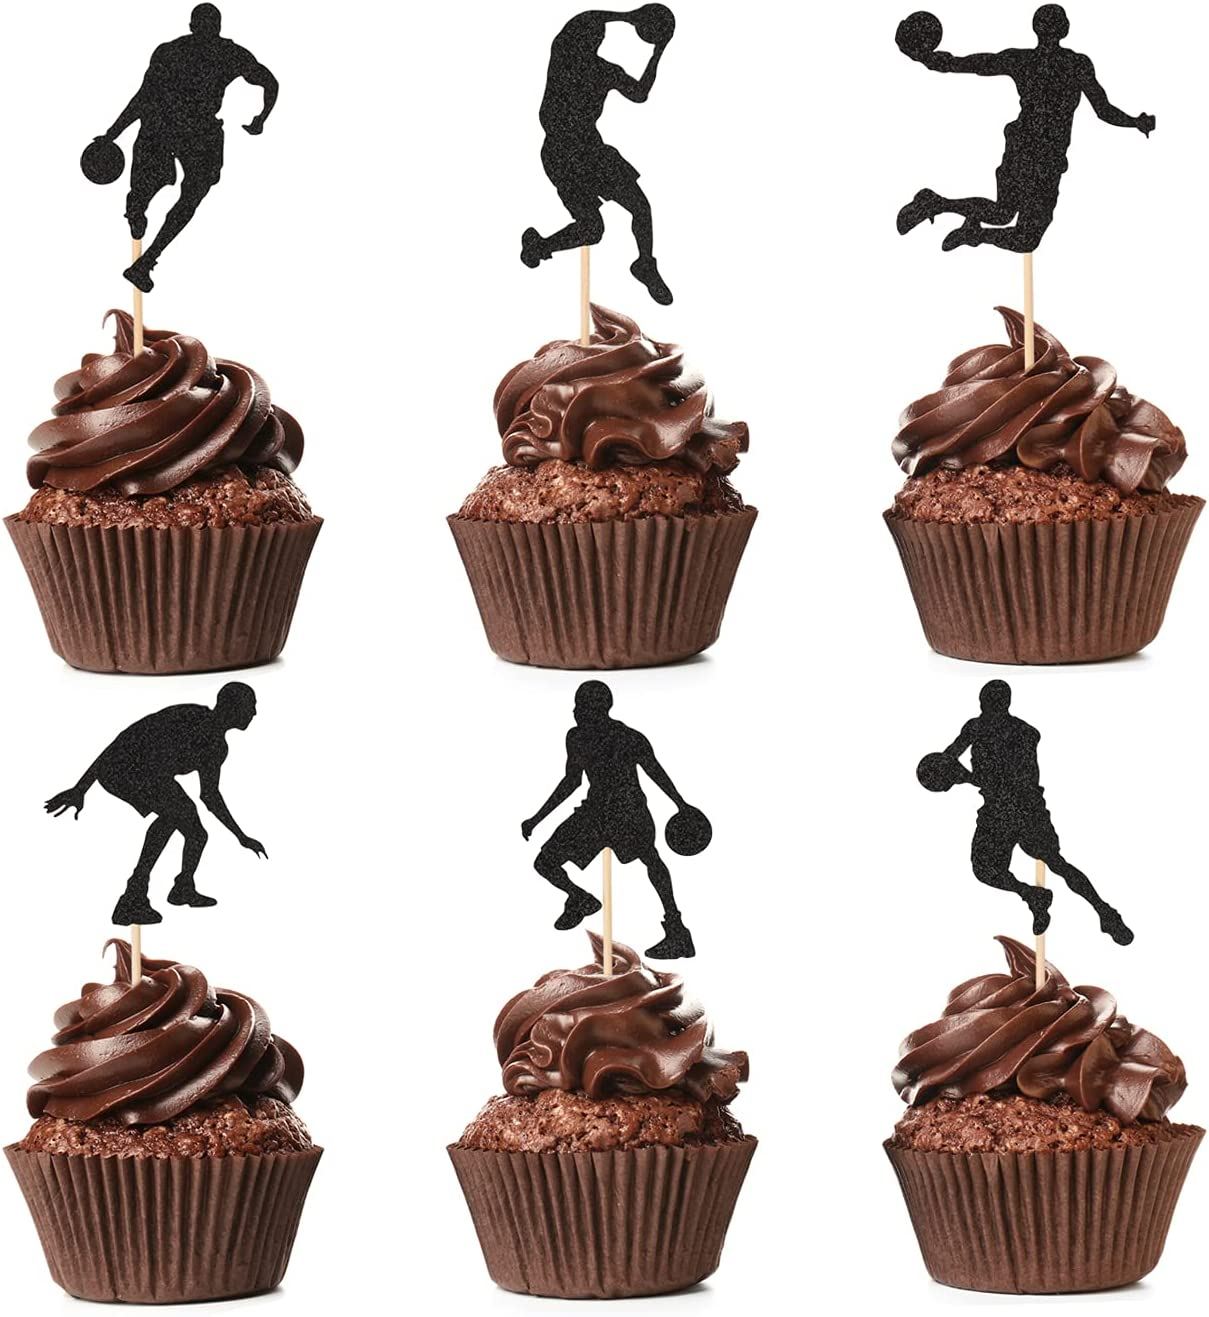 Basketball Cupcake Toppers Pack Many popular brands Luxury goods 48 Player of